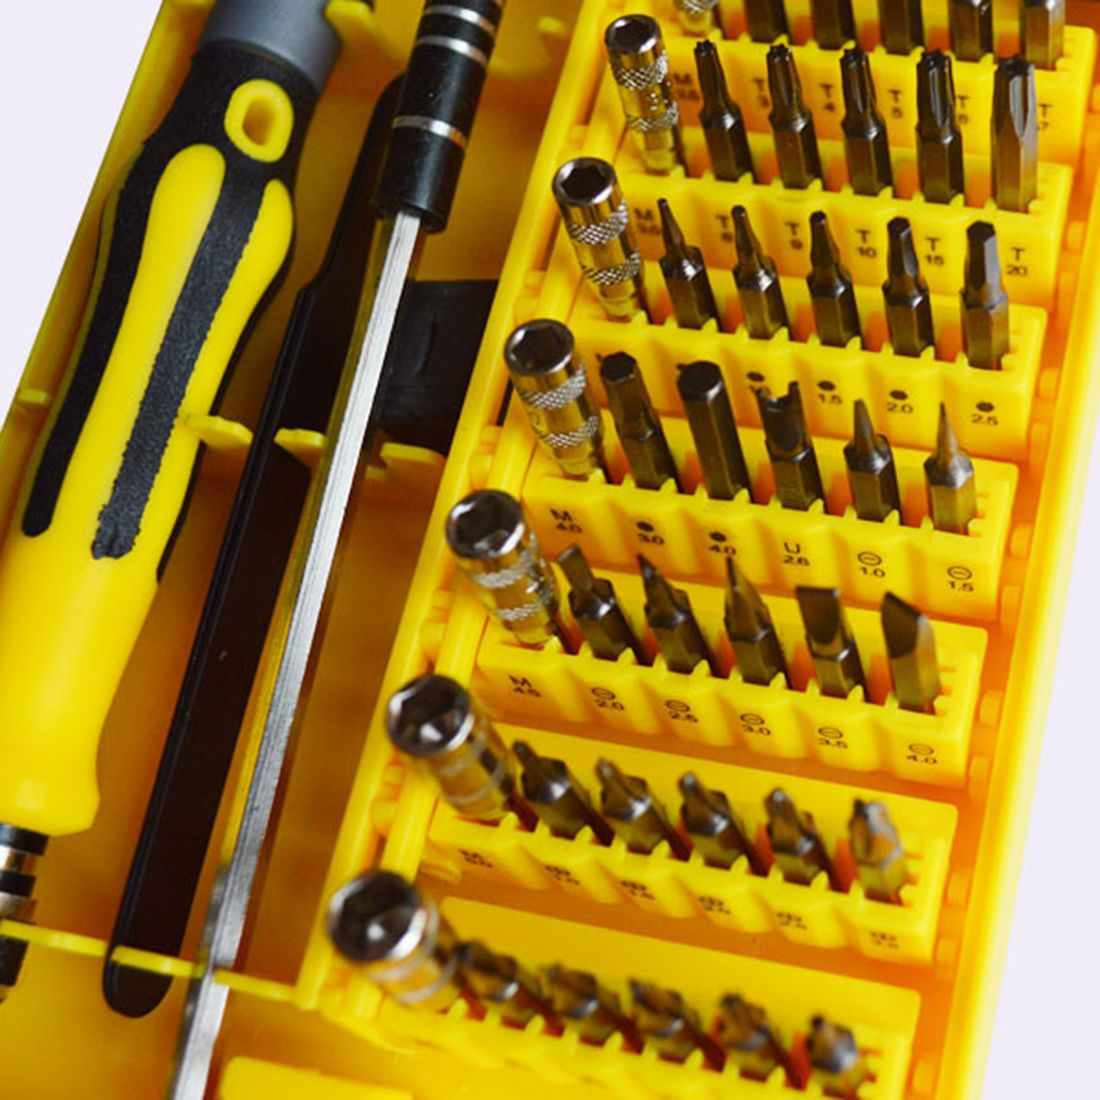 Hot 45 in 1 Professional Torx <font><b>Screwdriver</b></font> Set Precision For Watch Computer for iPhone Samsung Smart Phone Repair Dismantle Tools